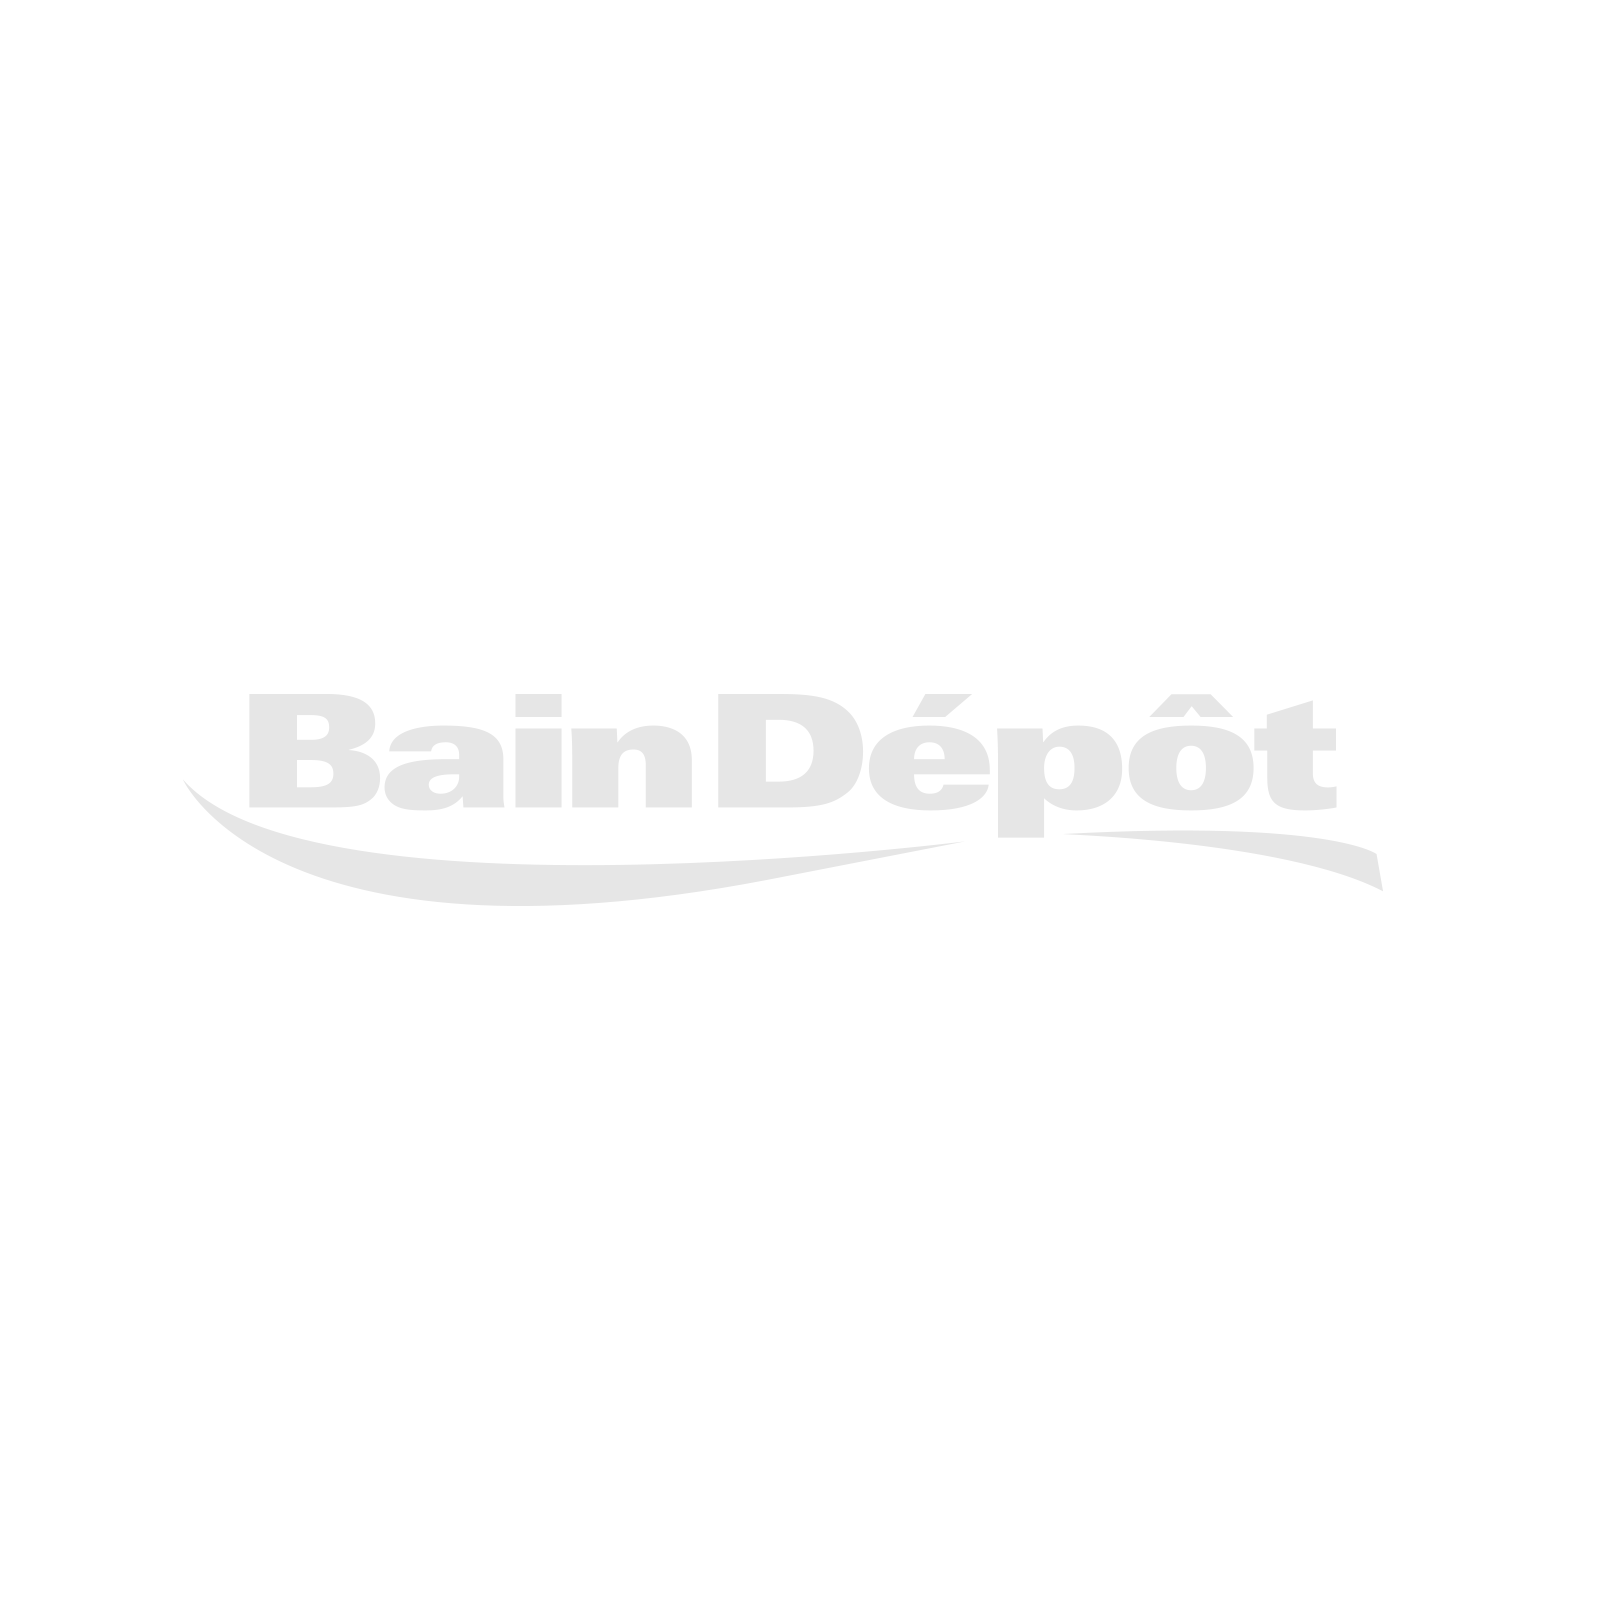 "Stainless steel undermount kitchen sink 32"" x 18"""